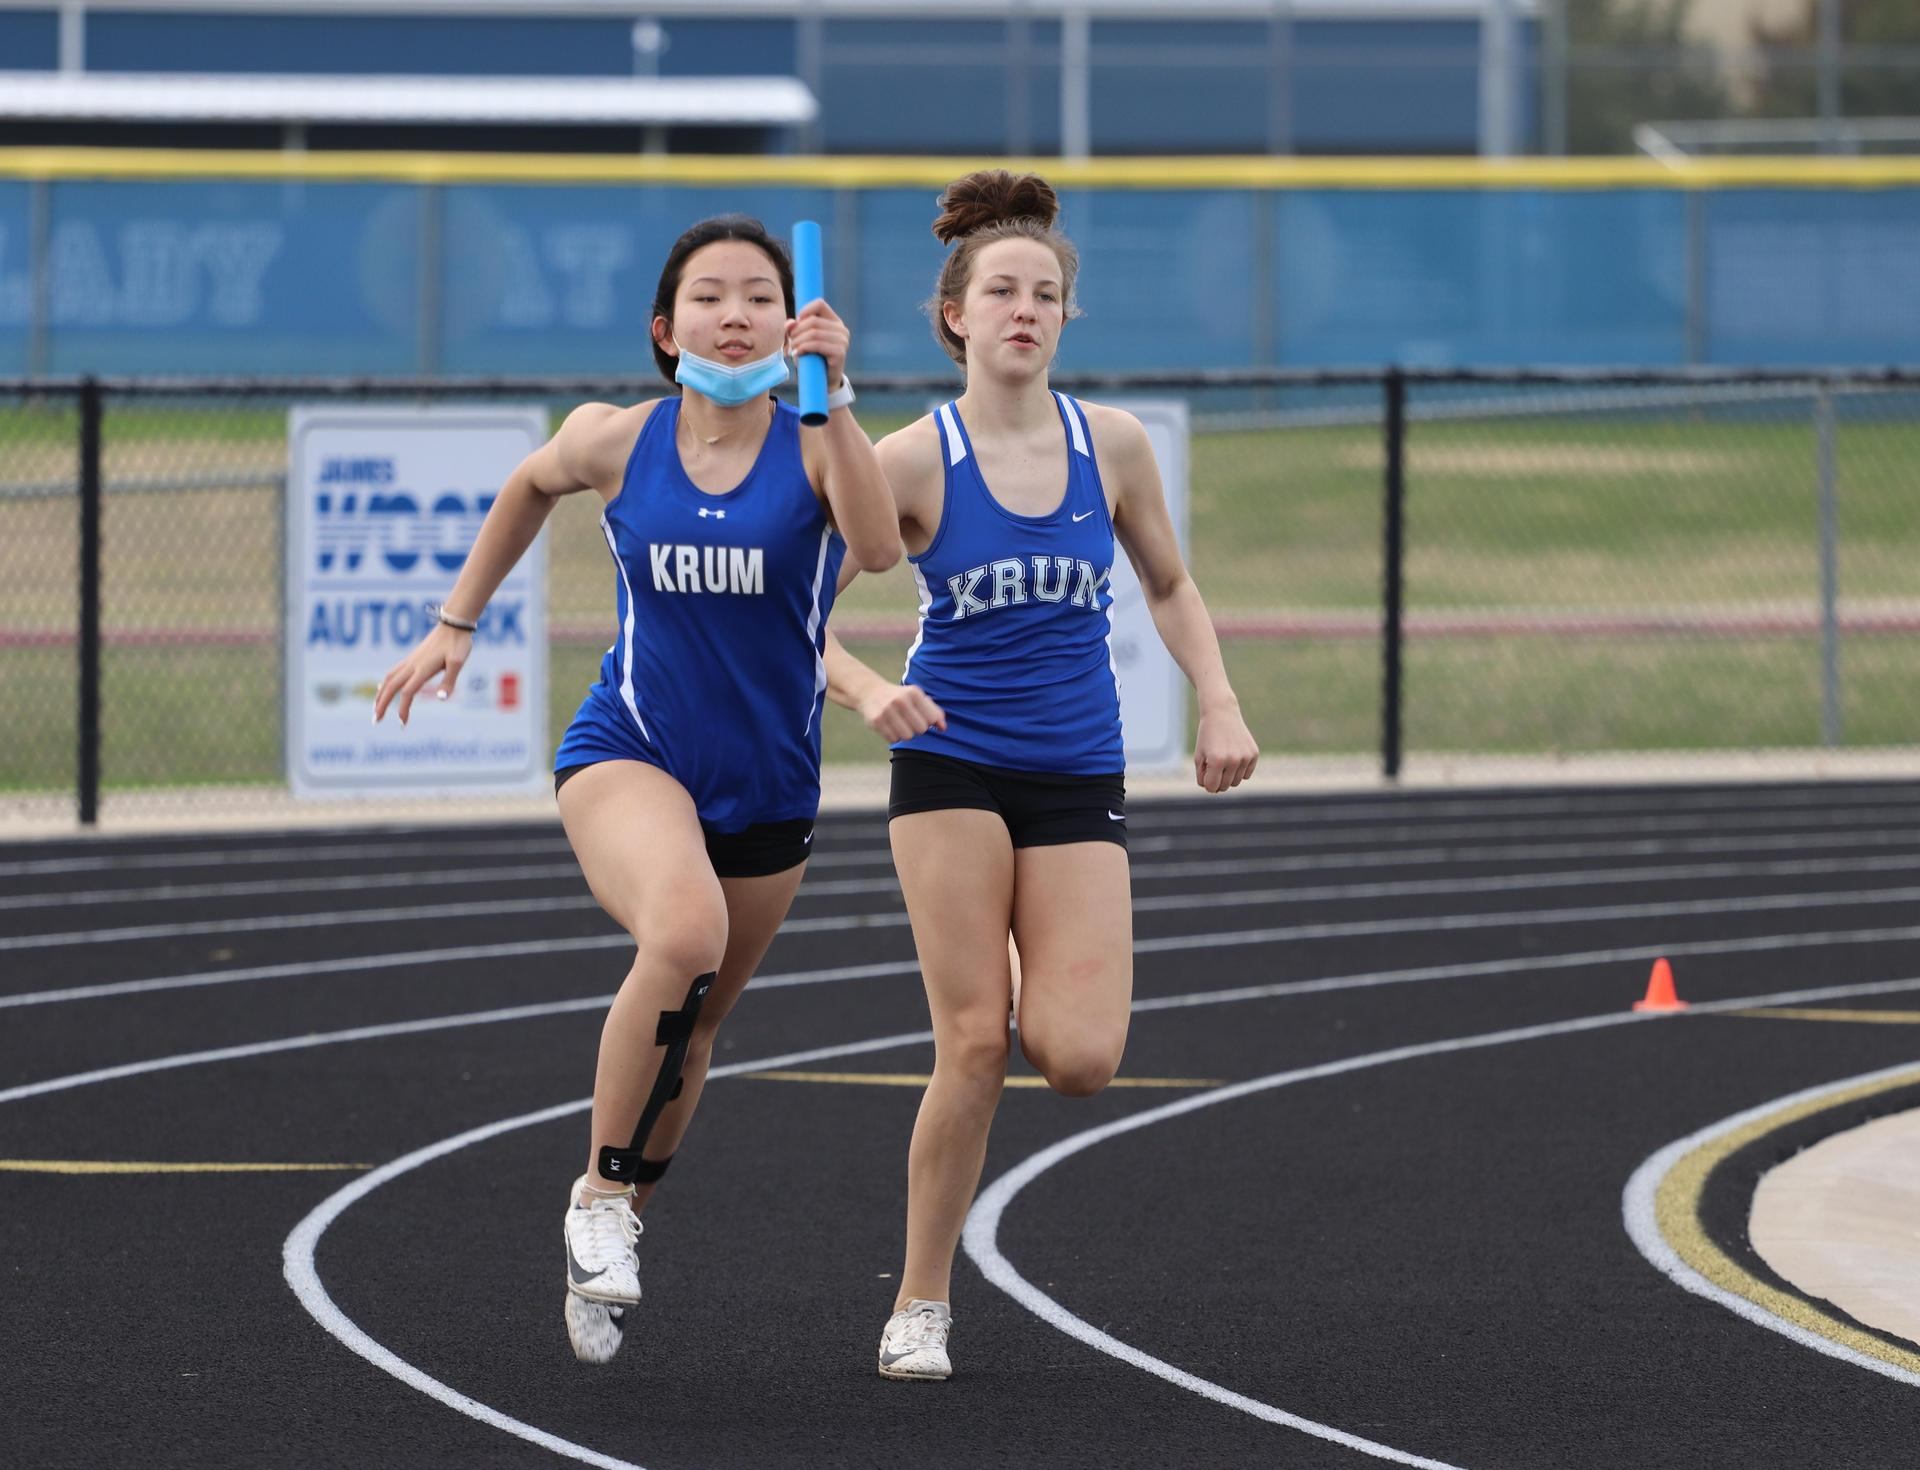 2 track athletes run in the relay